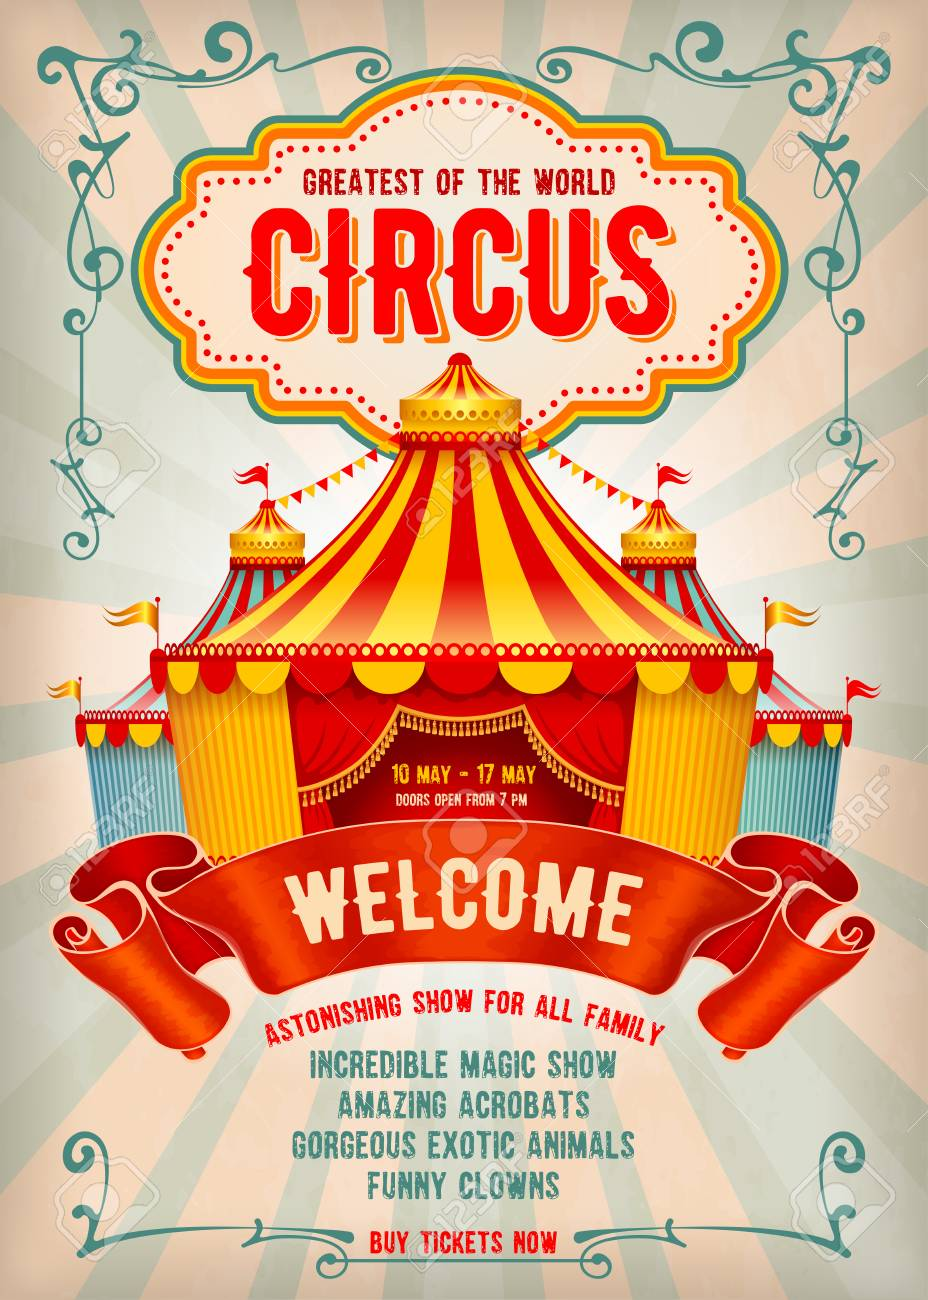 Vintage Circus Advertising Poster Or Flyer With Big Marquee